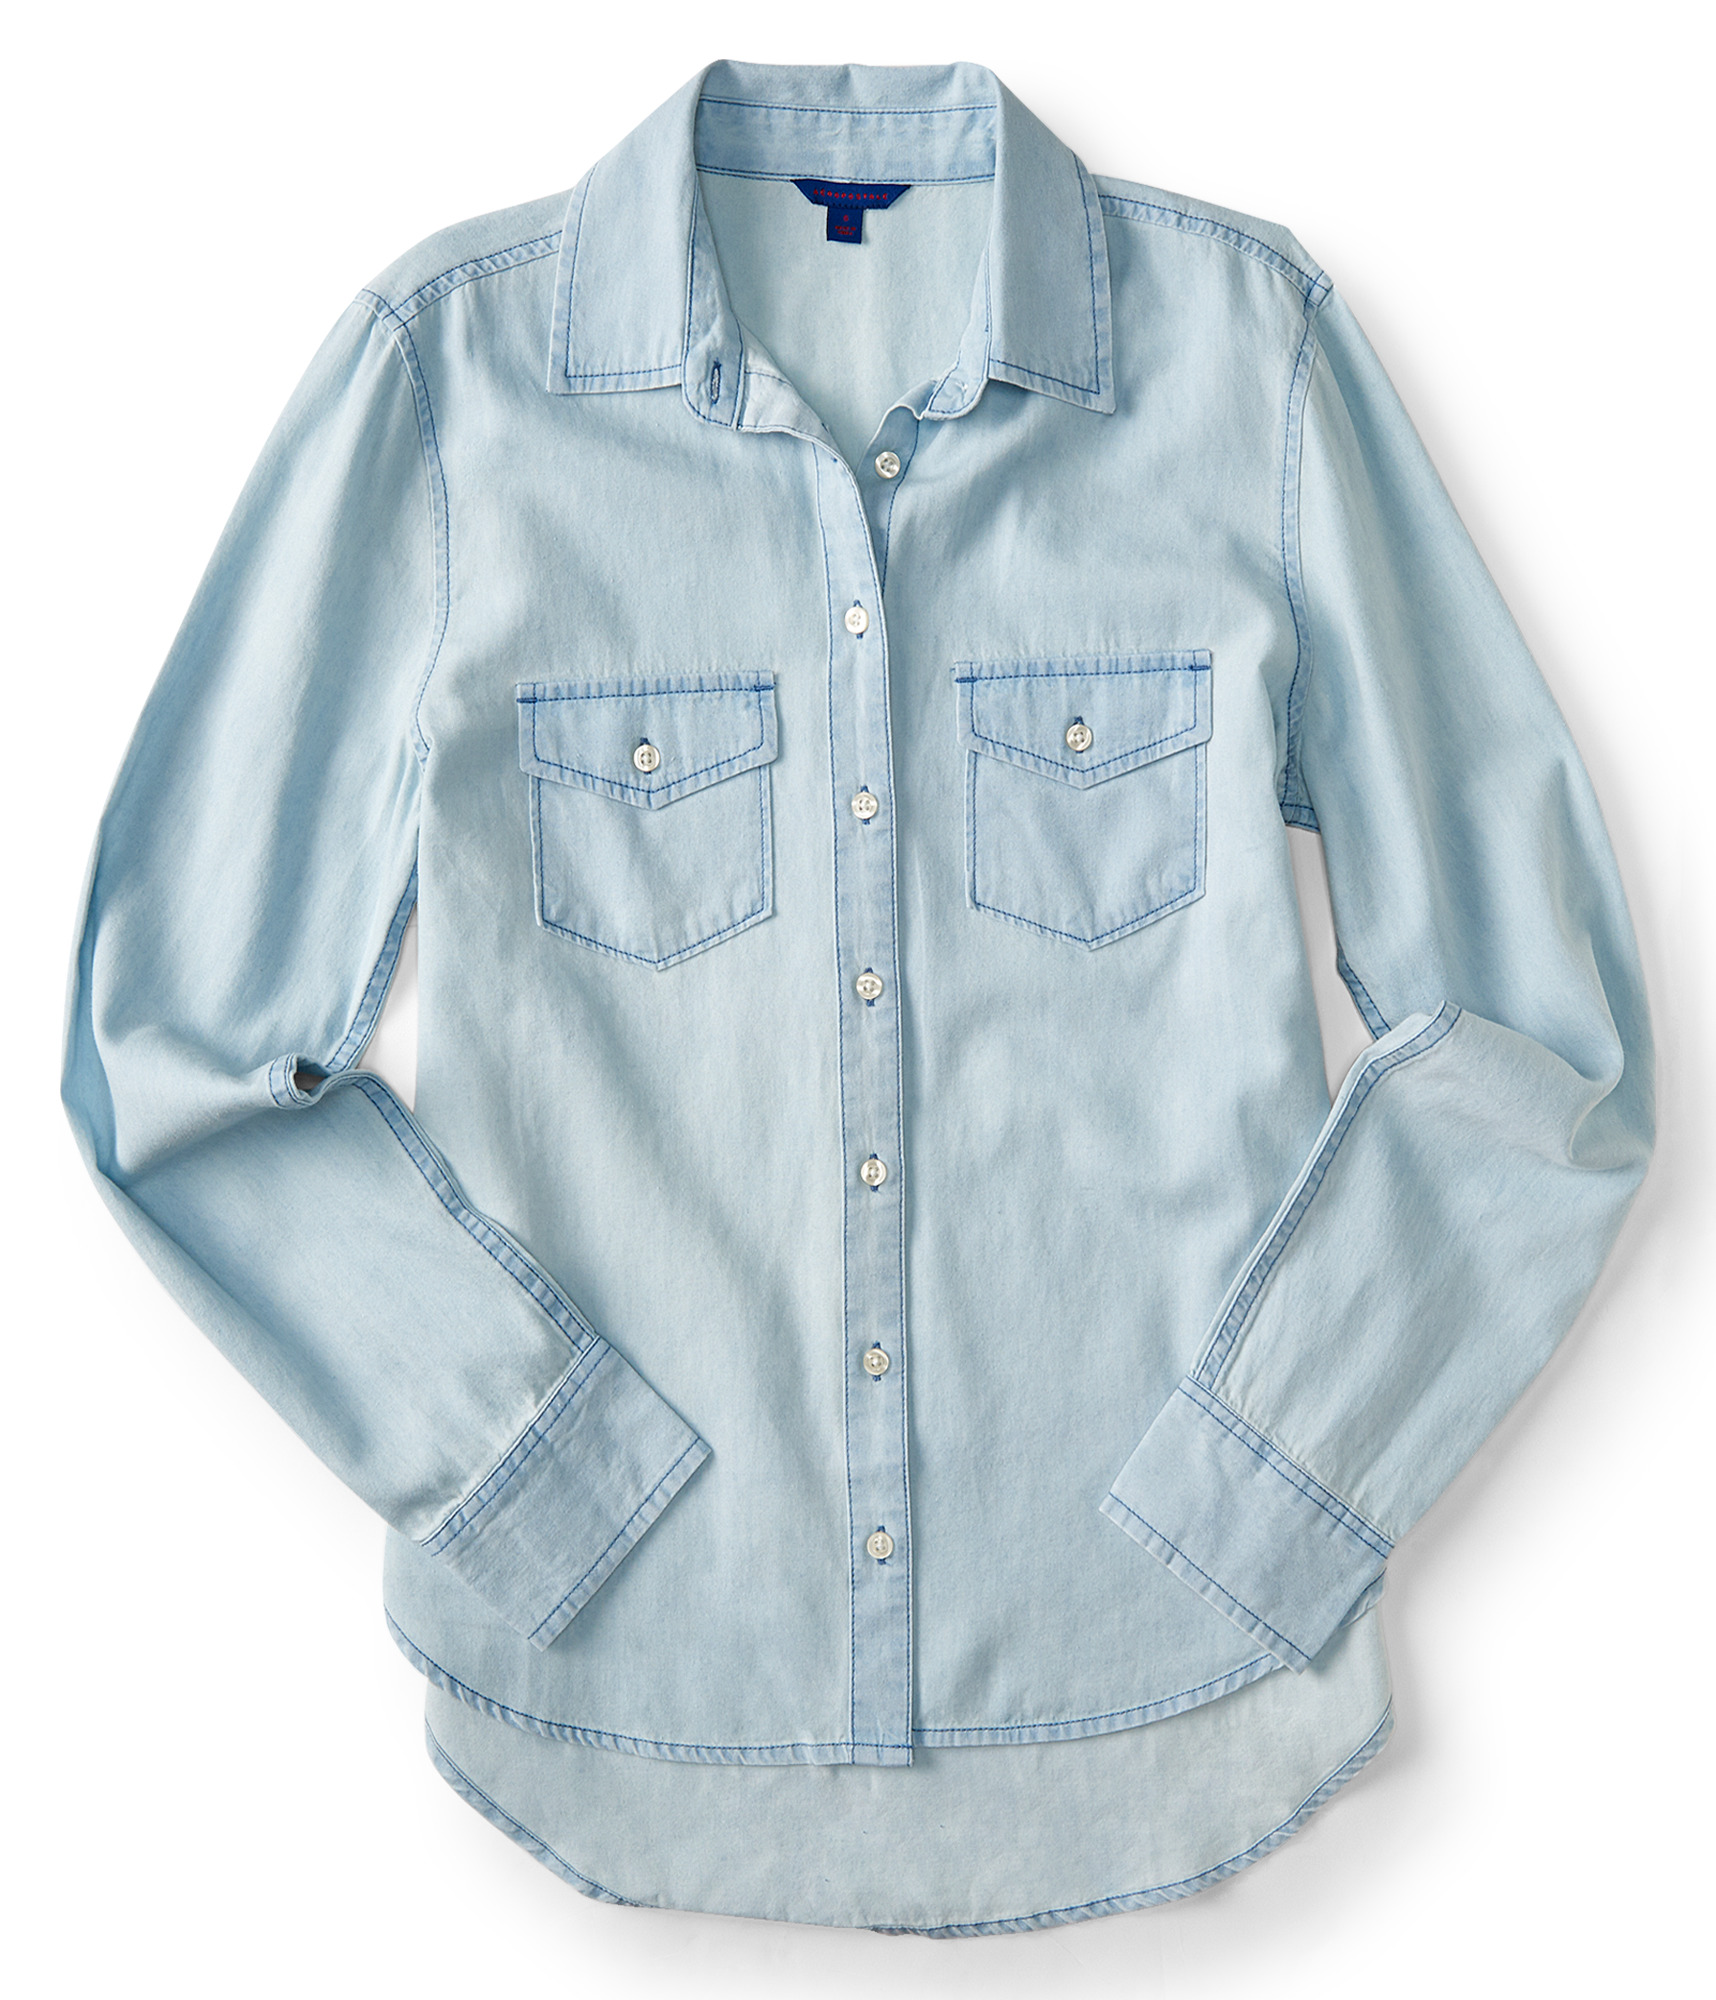 Shop for light blue chambray shirt online at Target. Free shipping on purchases over $35 and save 5% every day with your Target REDcard.